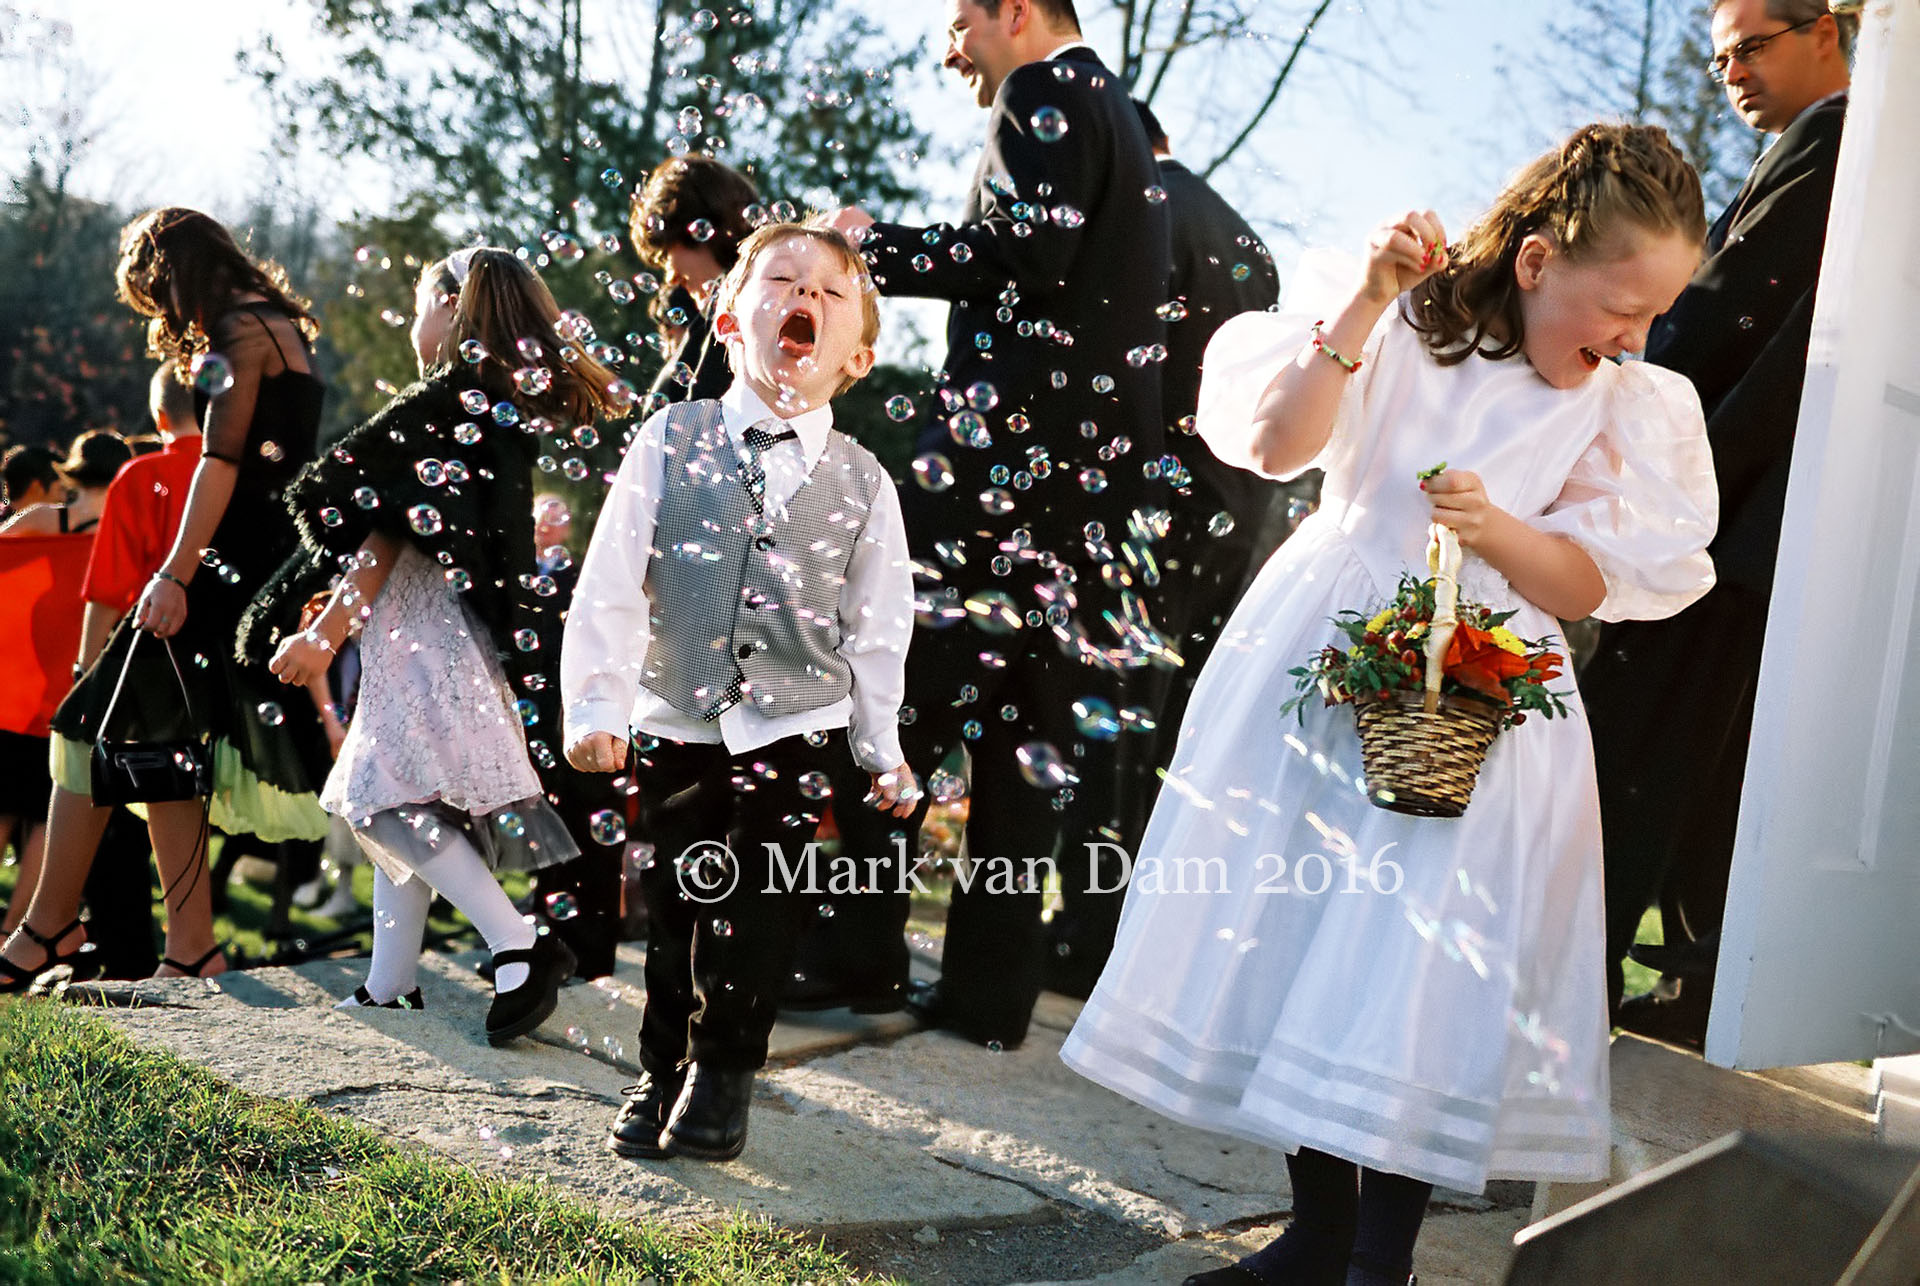 Boy cathces bubbles with mouth at Viamede Resort wedding photography session